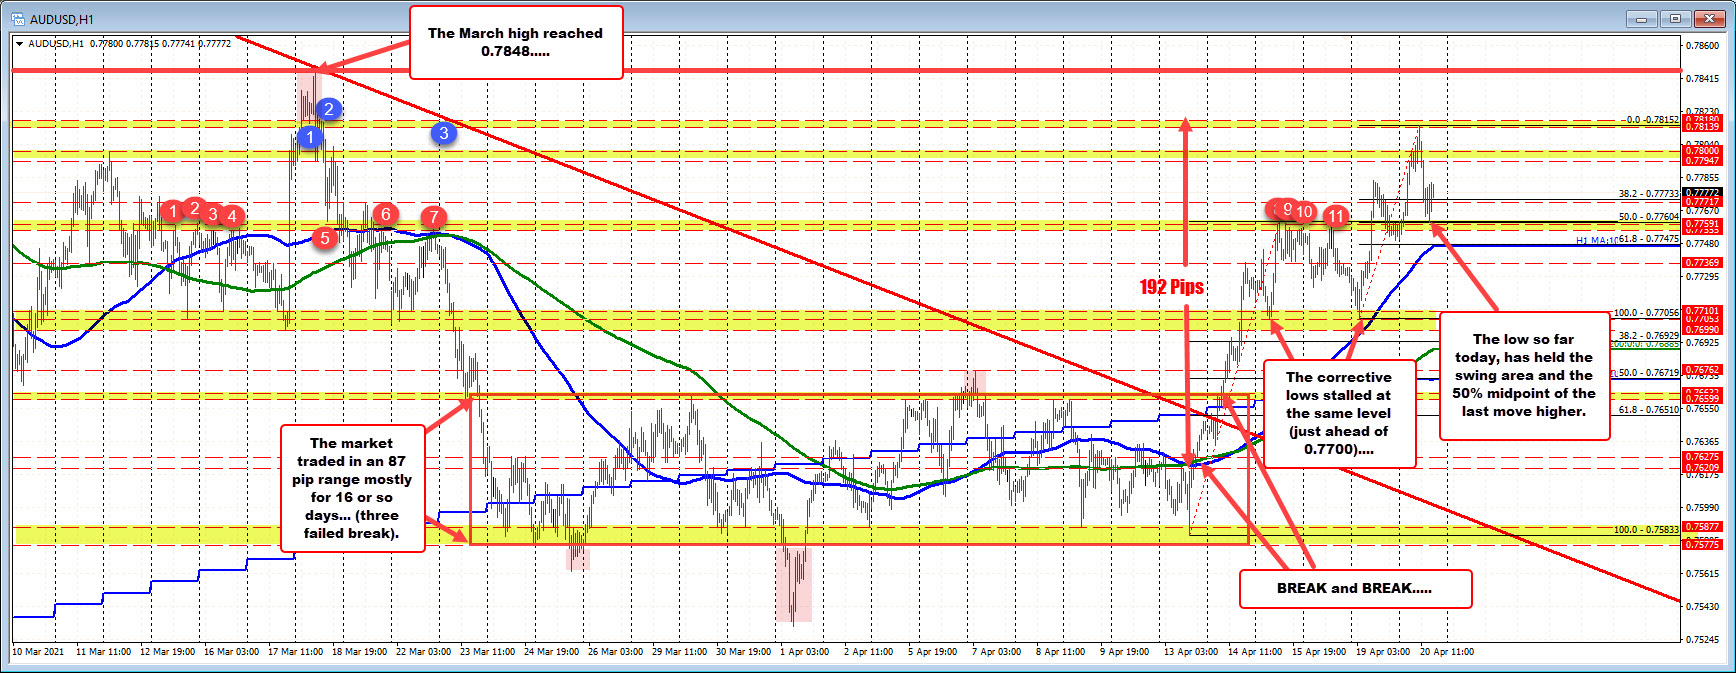 AUDUSD extends the upward move today and corrects into support. Buyers in control